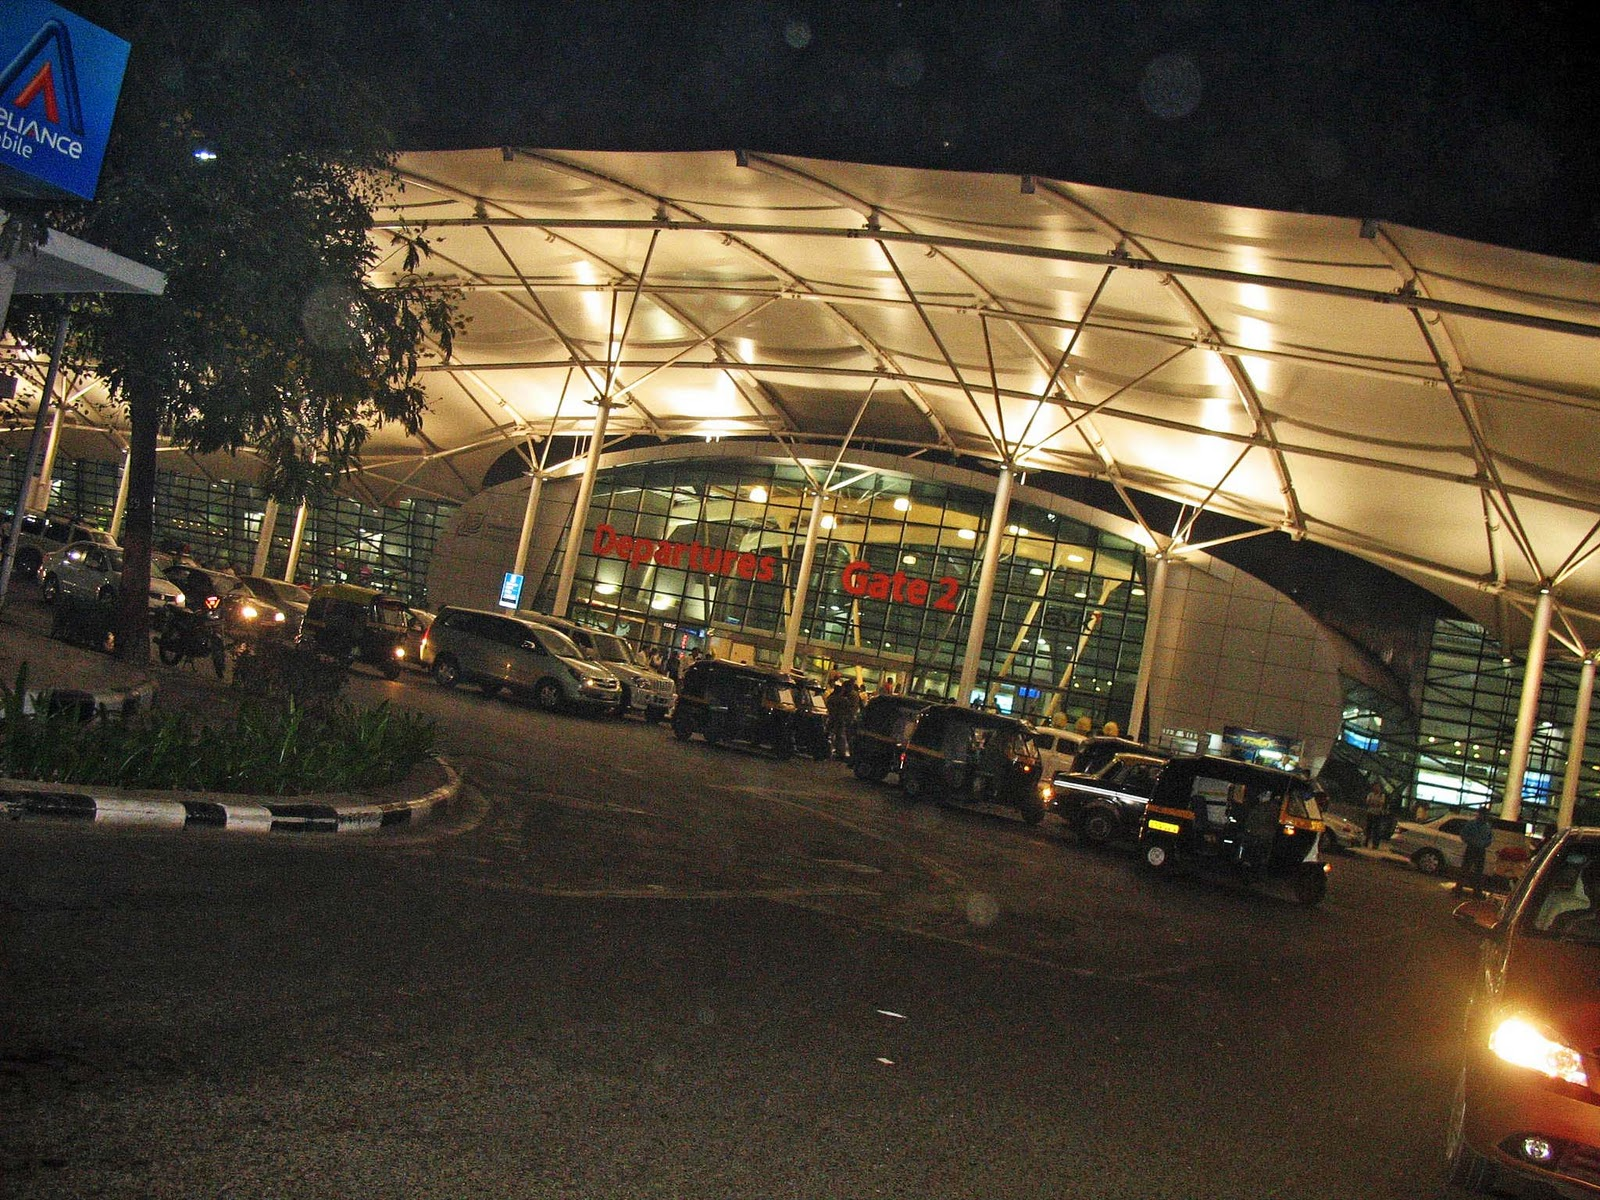 Airport at night inside